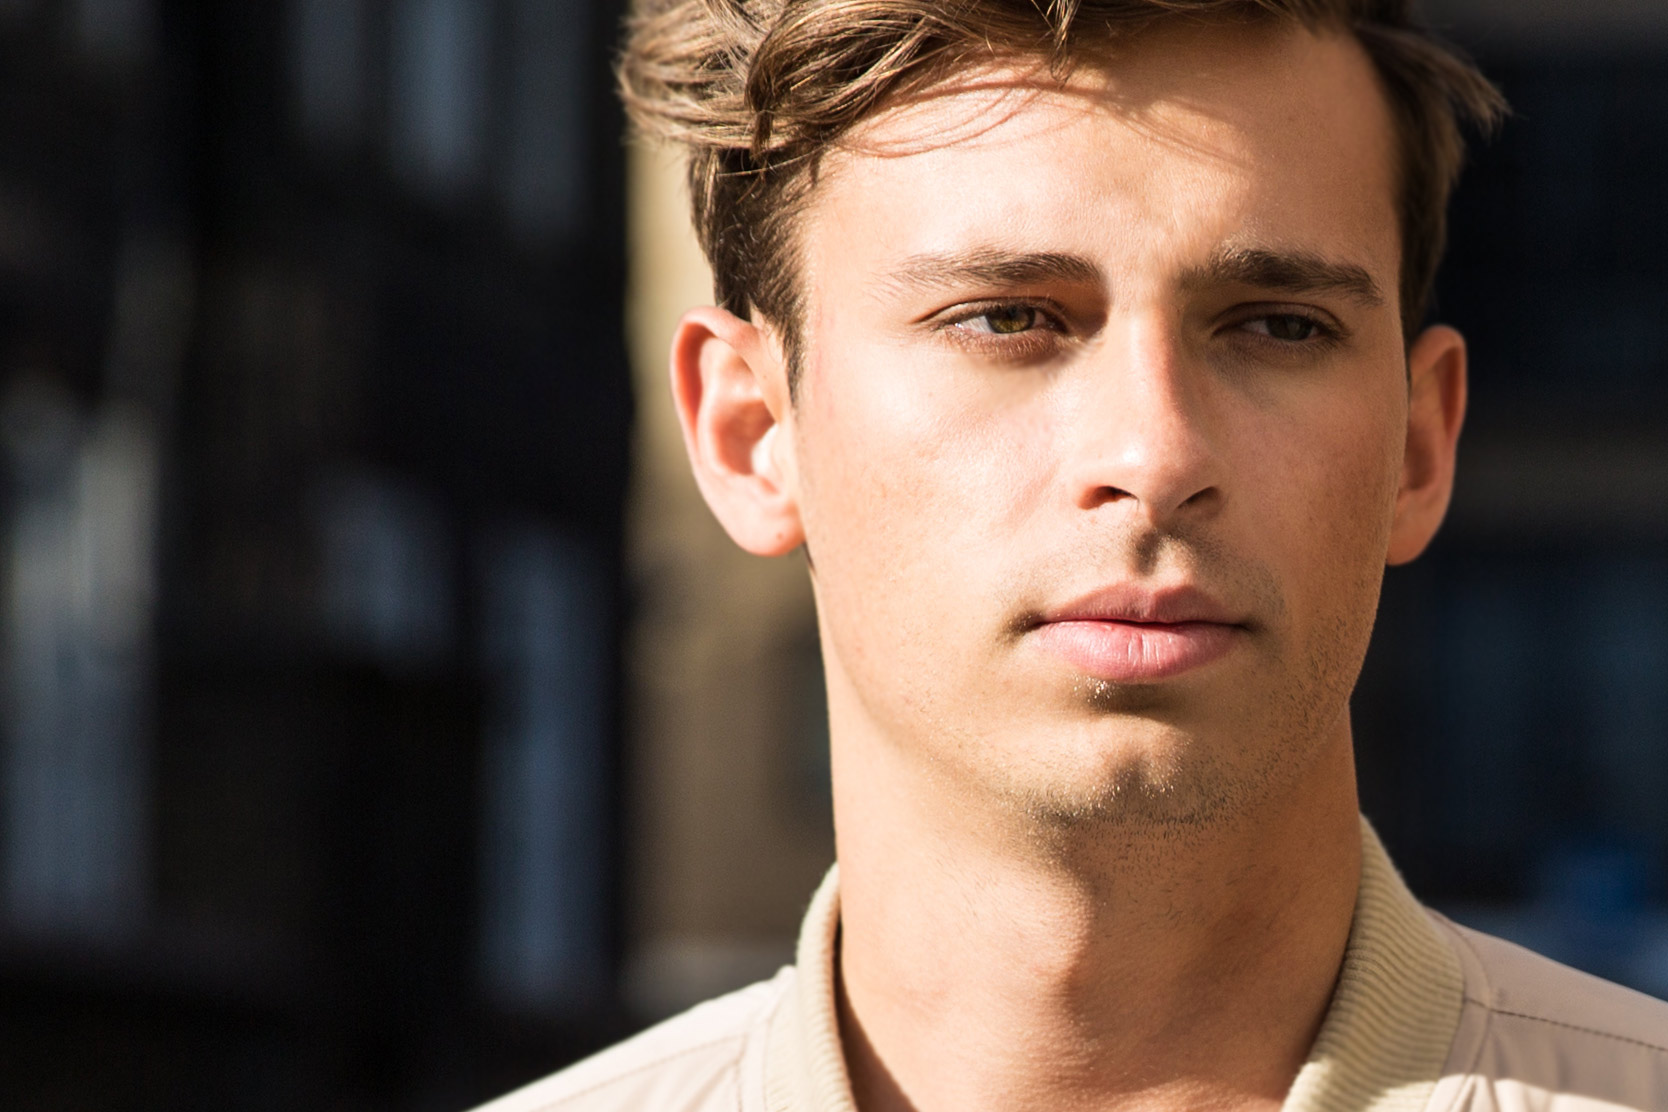 Flume shares new mixtape 'Hi This Is Flume' ft SOPHIE, slowthai and more